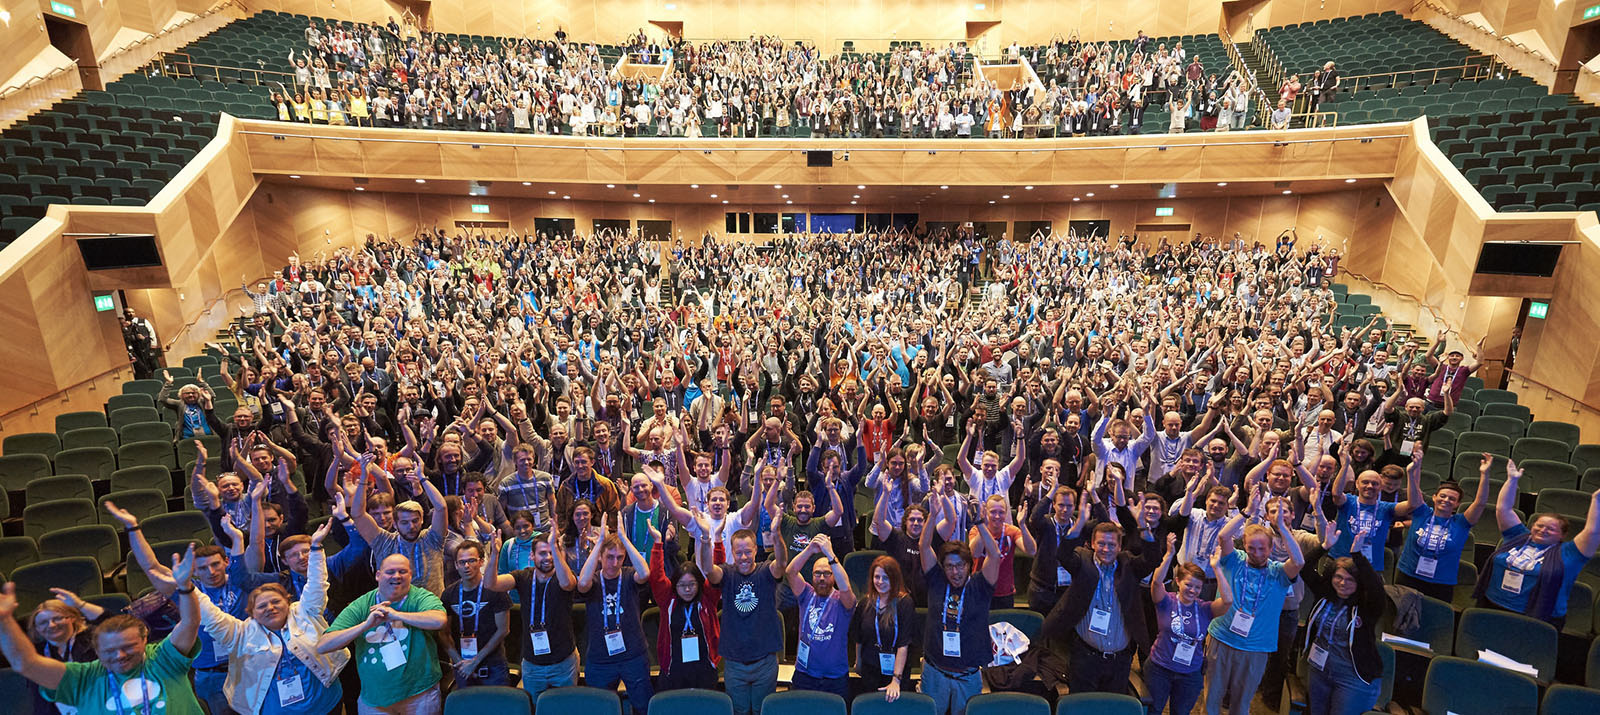 DrupalCon Dublin 2016 Official Group Photo.